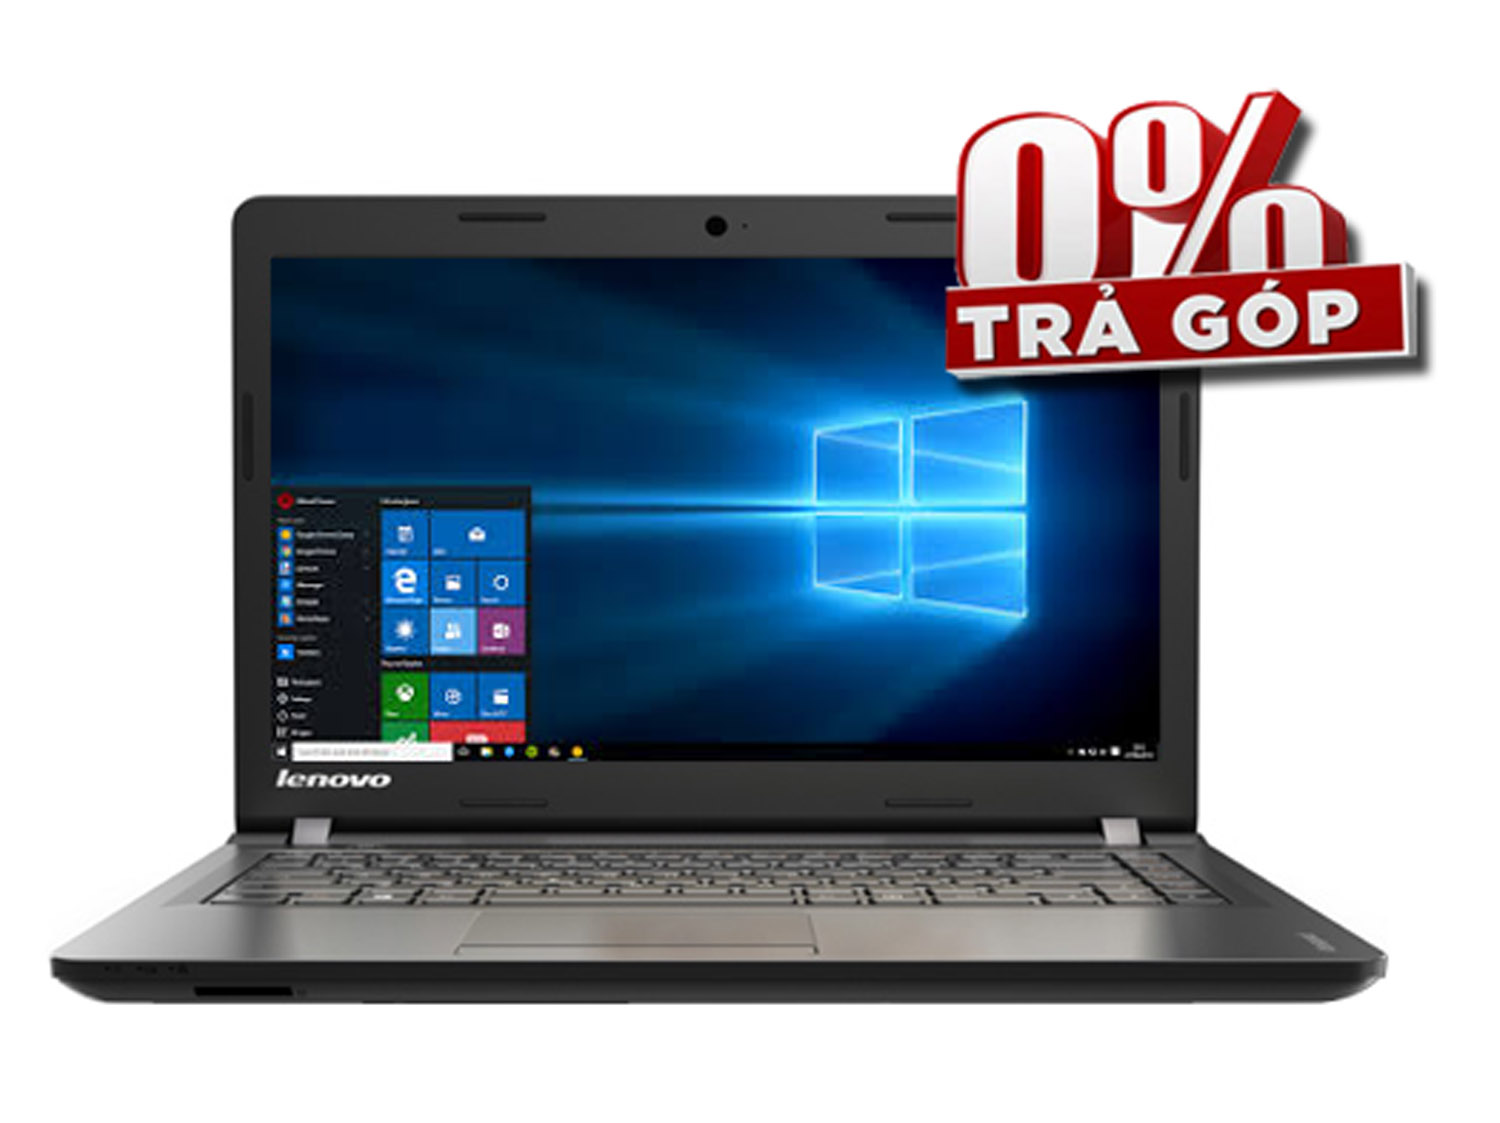 Laptop Lenovo Ideapad 100 - 80RK002WVN Win10